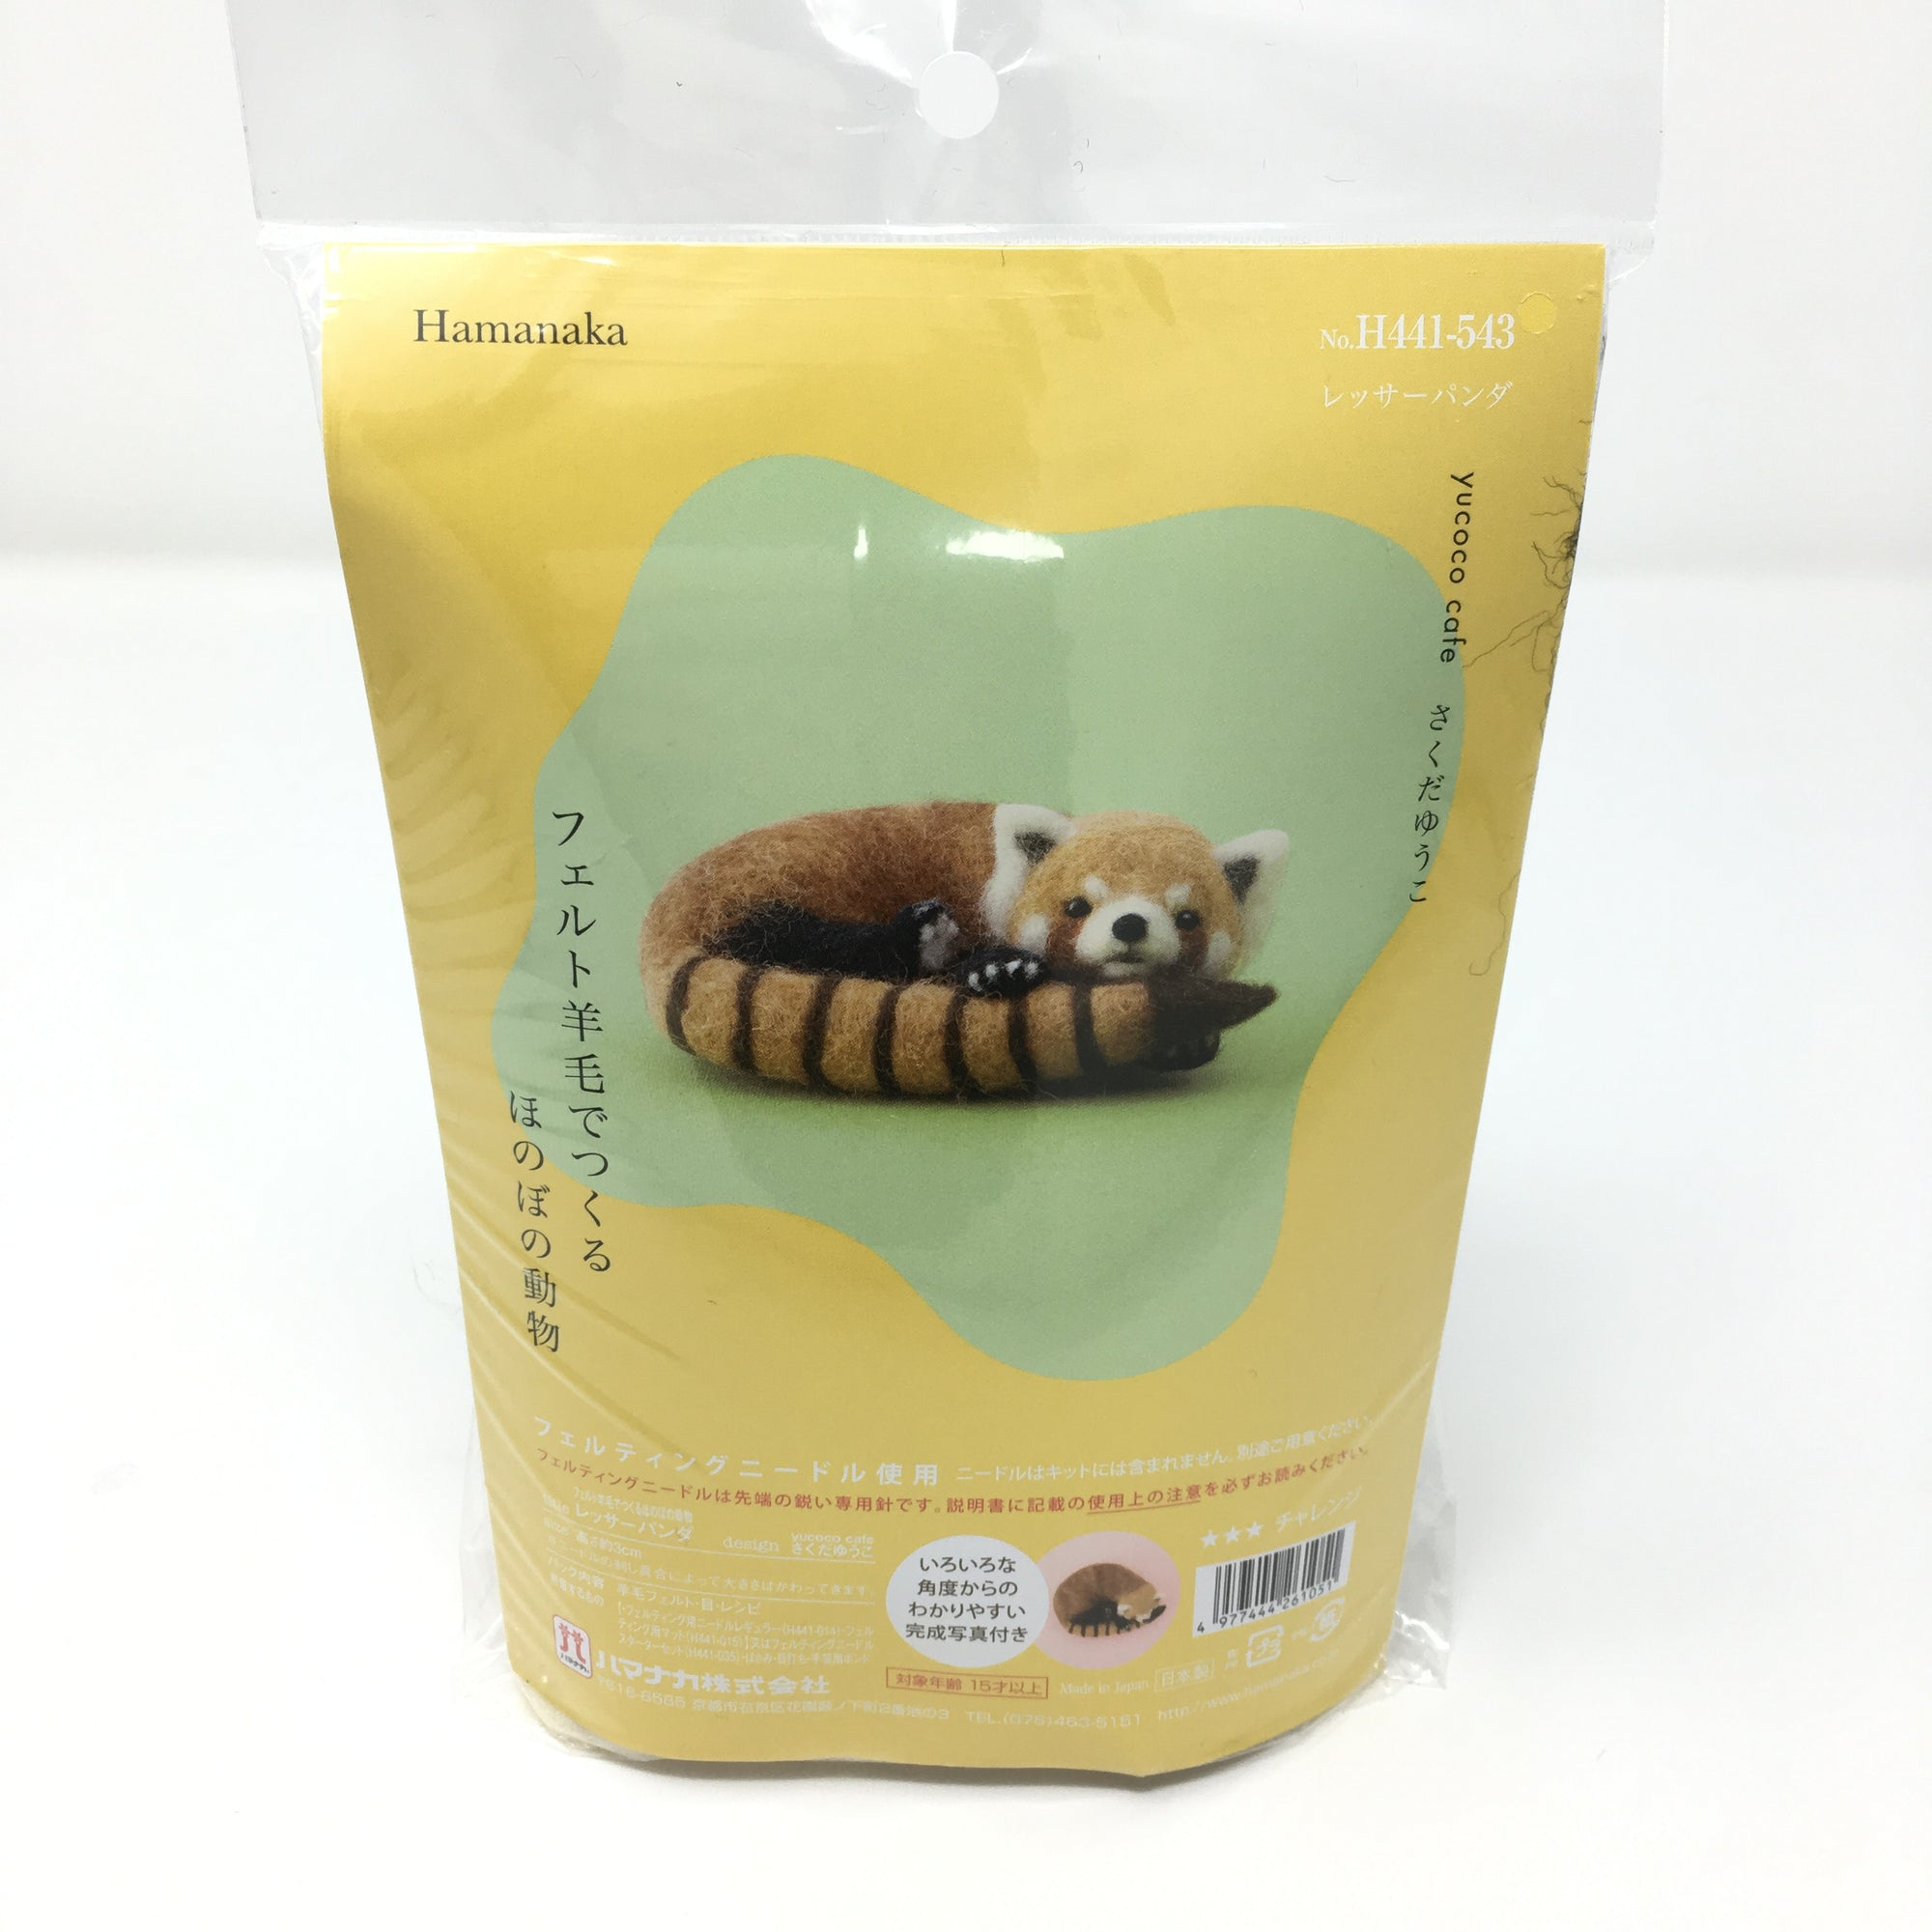 Hamanaka Needle Felting Kit - Red Panda